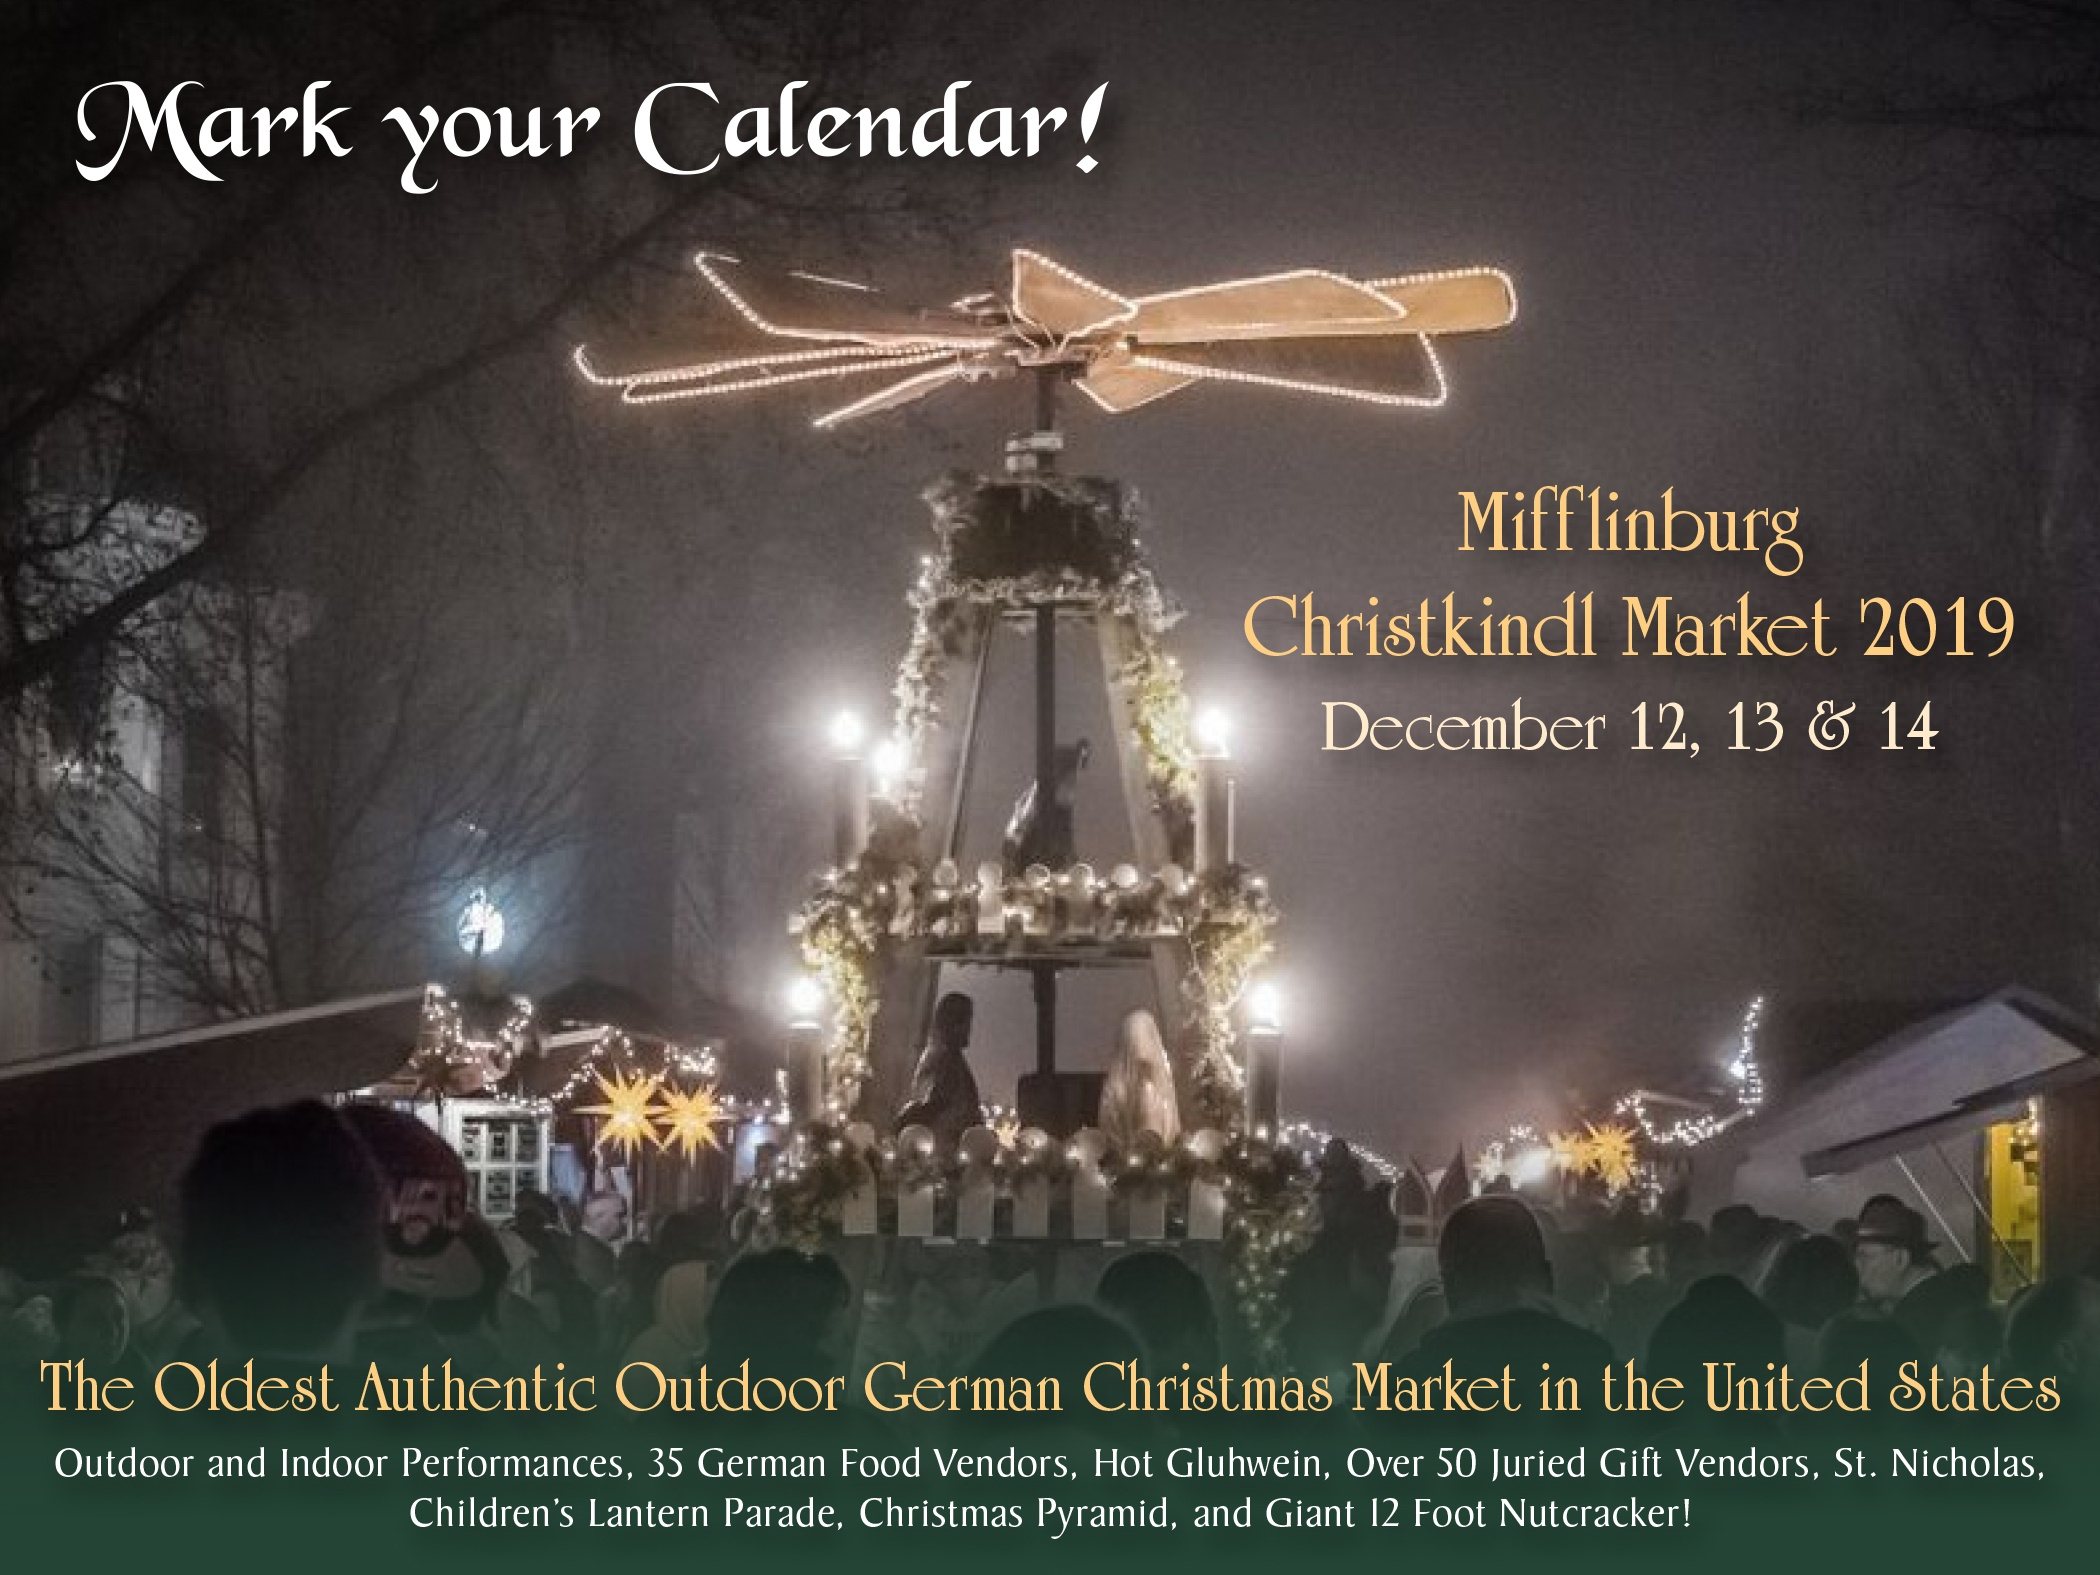 https://0201.nccdn.net/4_2/000/000/01e/20c/Christkindl-Postcard-2018-1-2100x1575.jpg